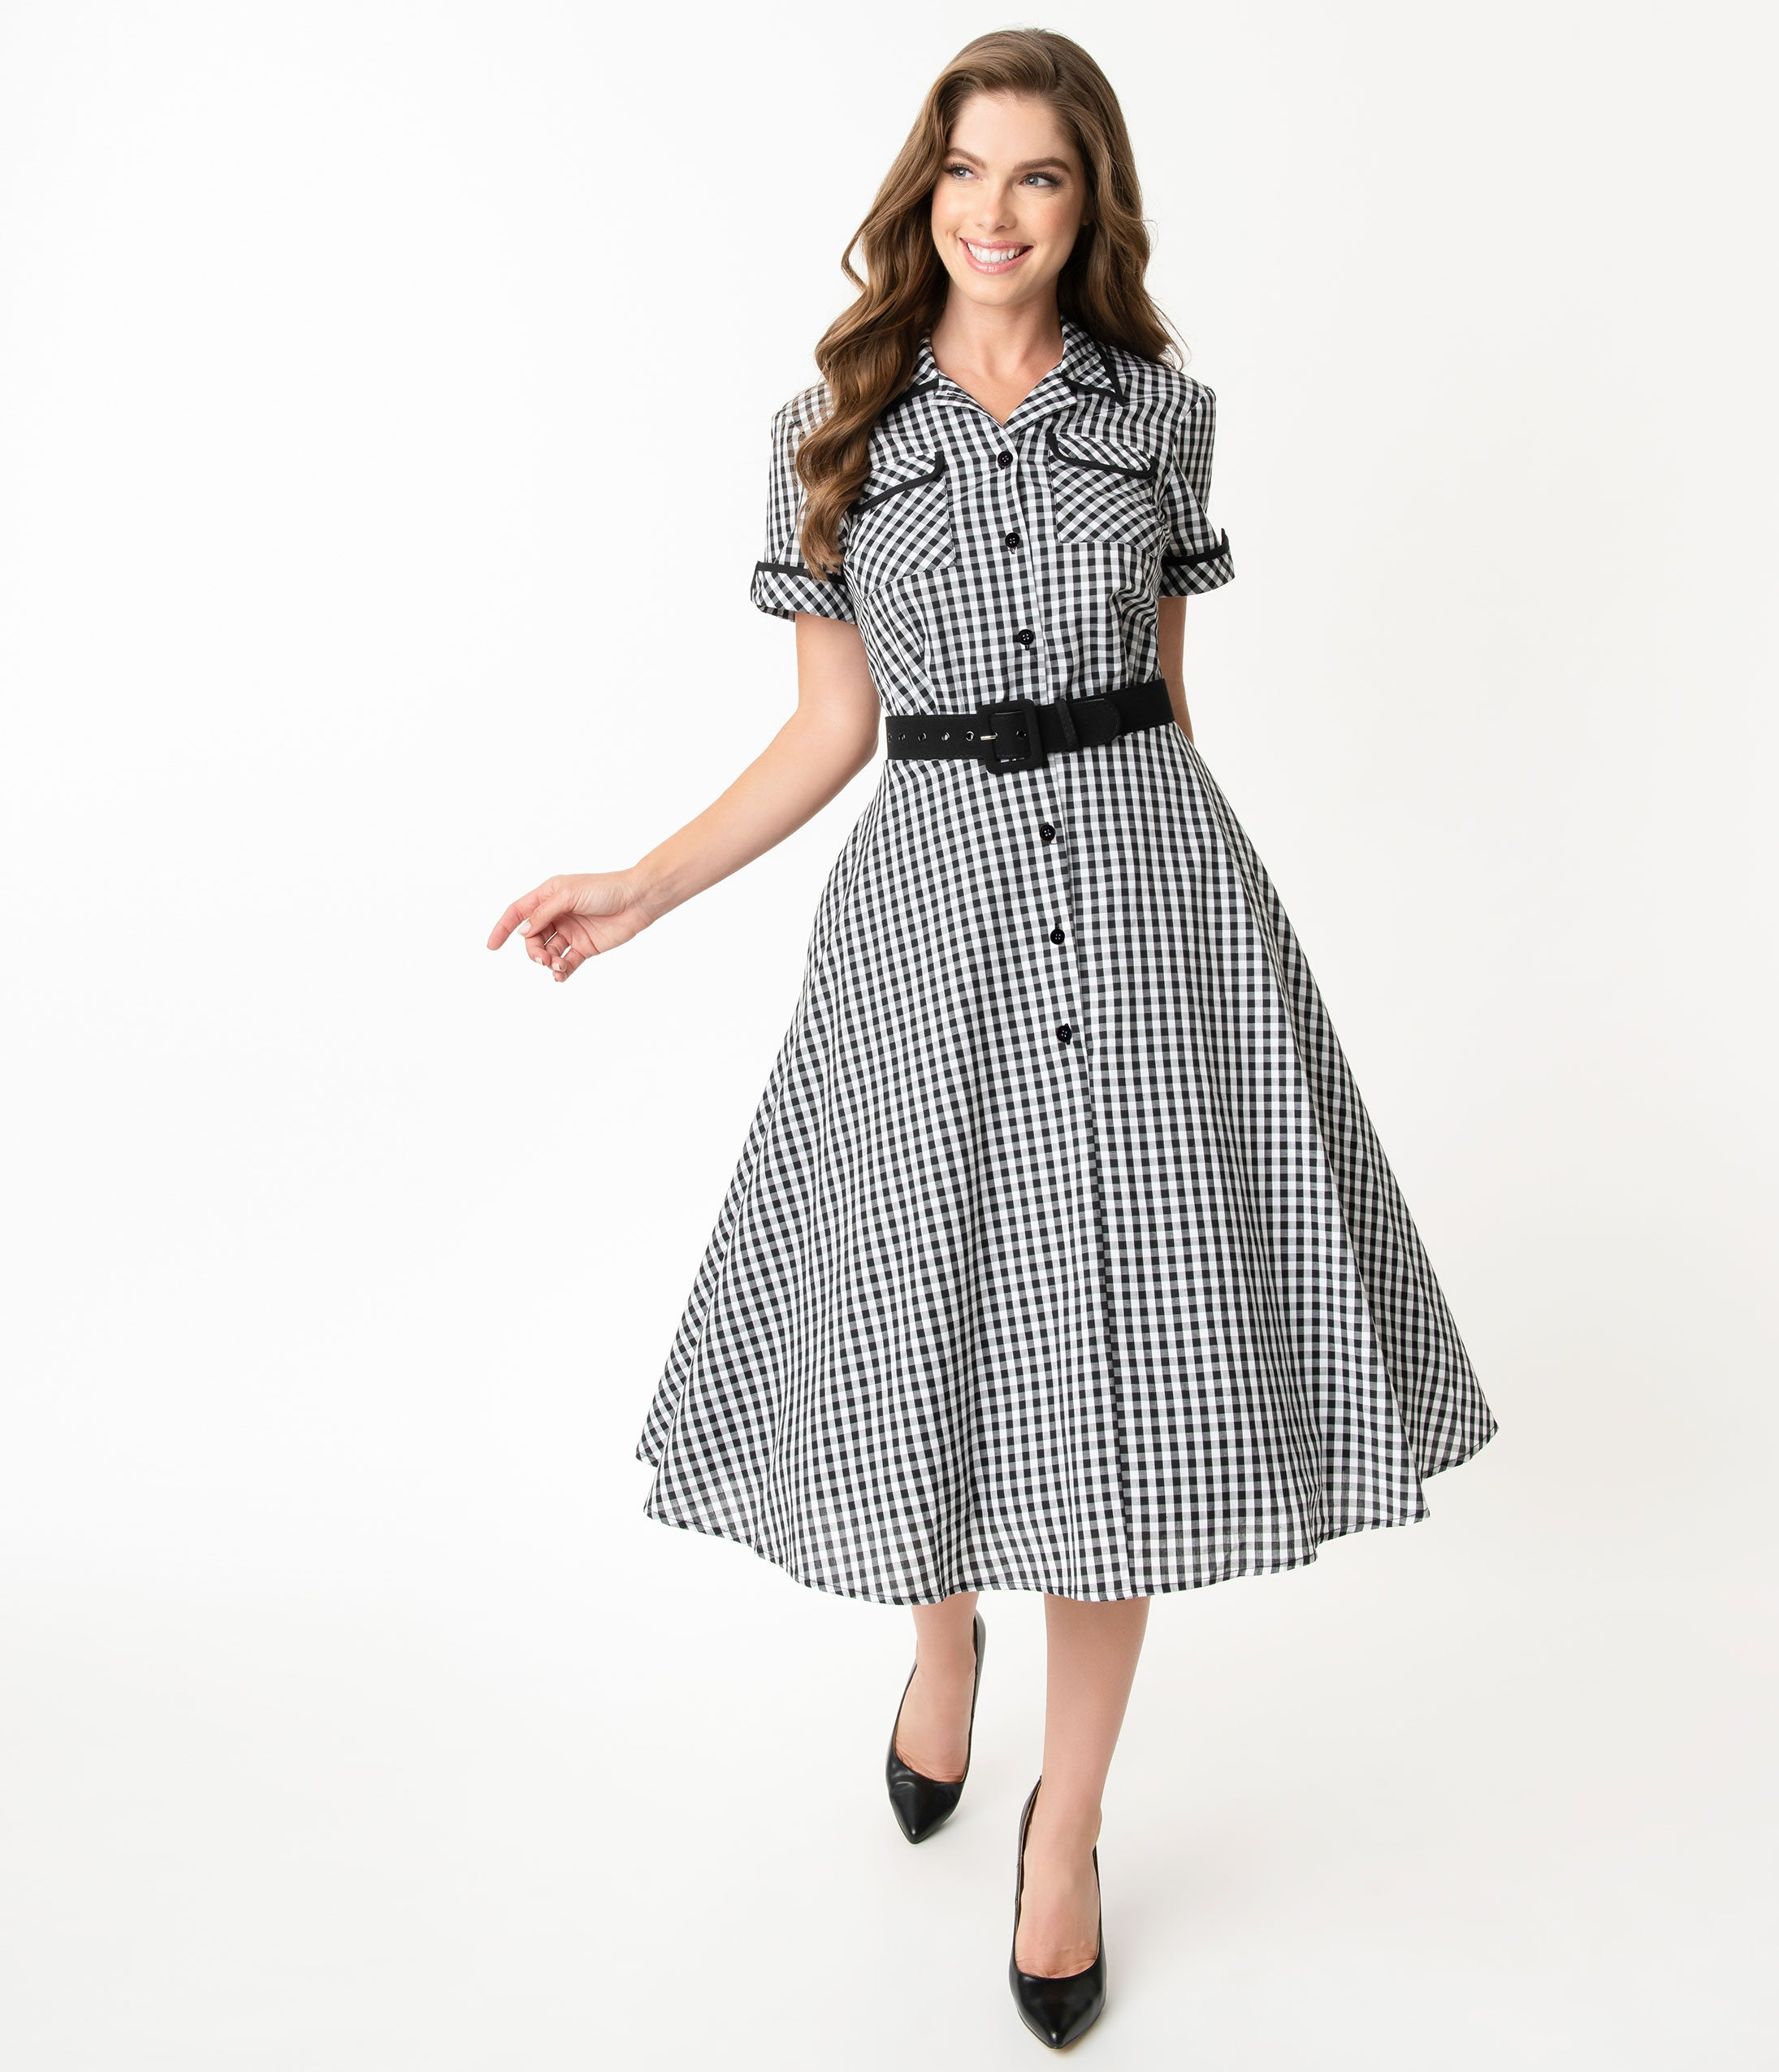 500 Vintage Style Dresses for Sale | Vintage Inspired Dresses I Love Lucy X Unique Vintage Black  White Gingham Ethel Swing Dress $98.00 AT vintagedancer.com